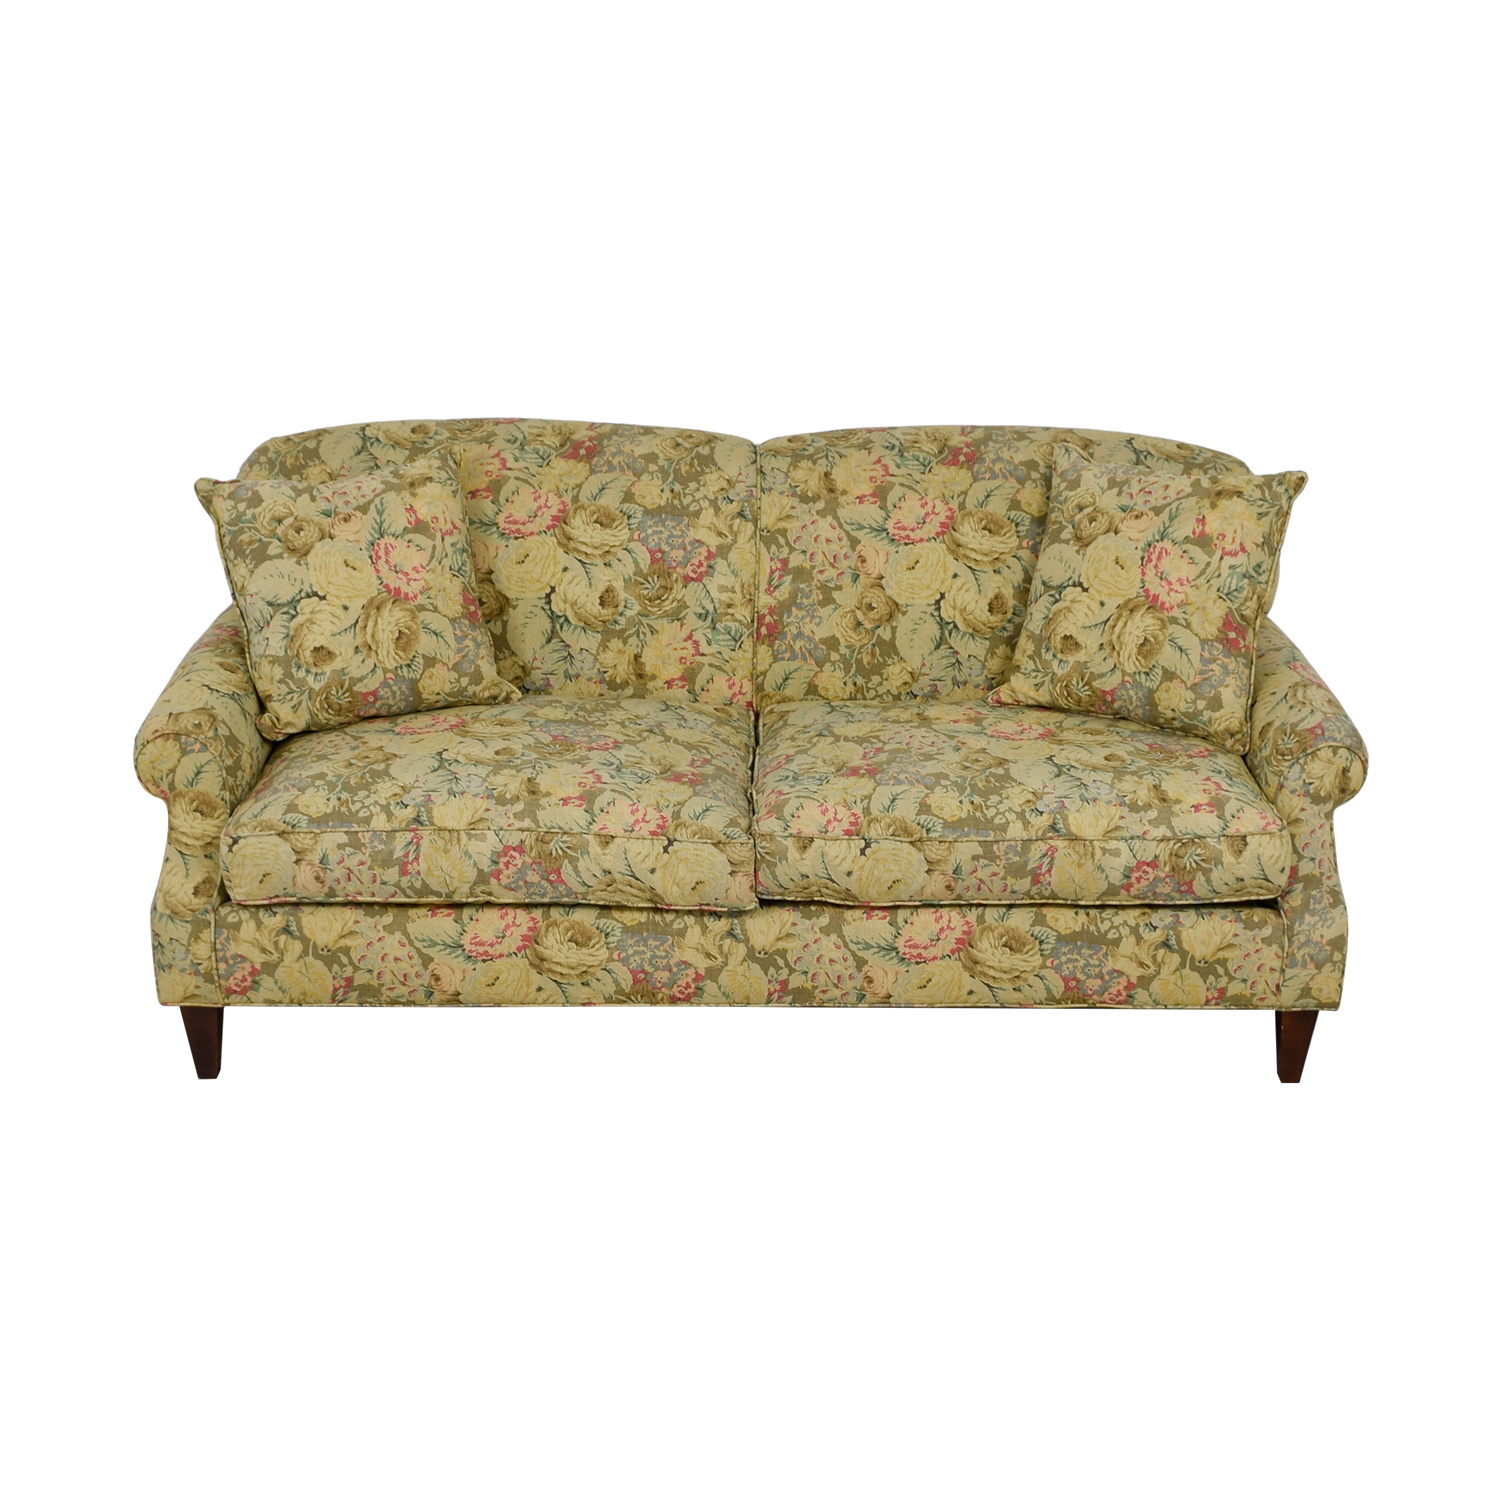 buy Crate & Barrel Crate & Barrel English Tight-back Roll Arm Sofa with Throw Pillows online